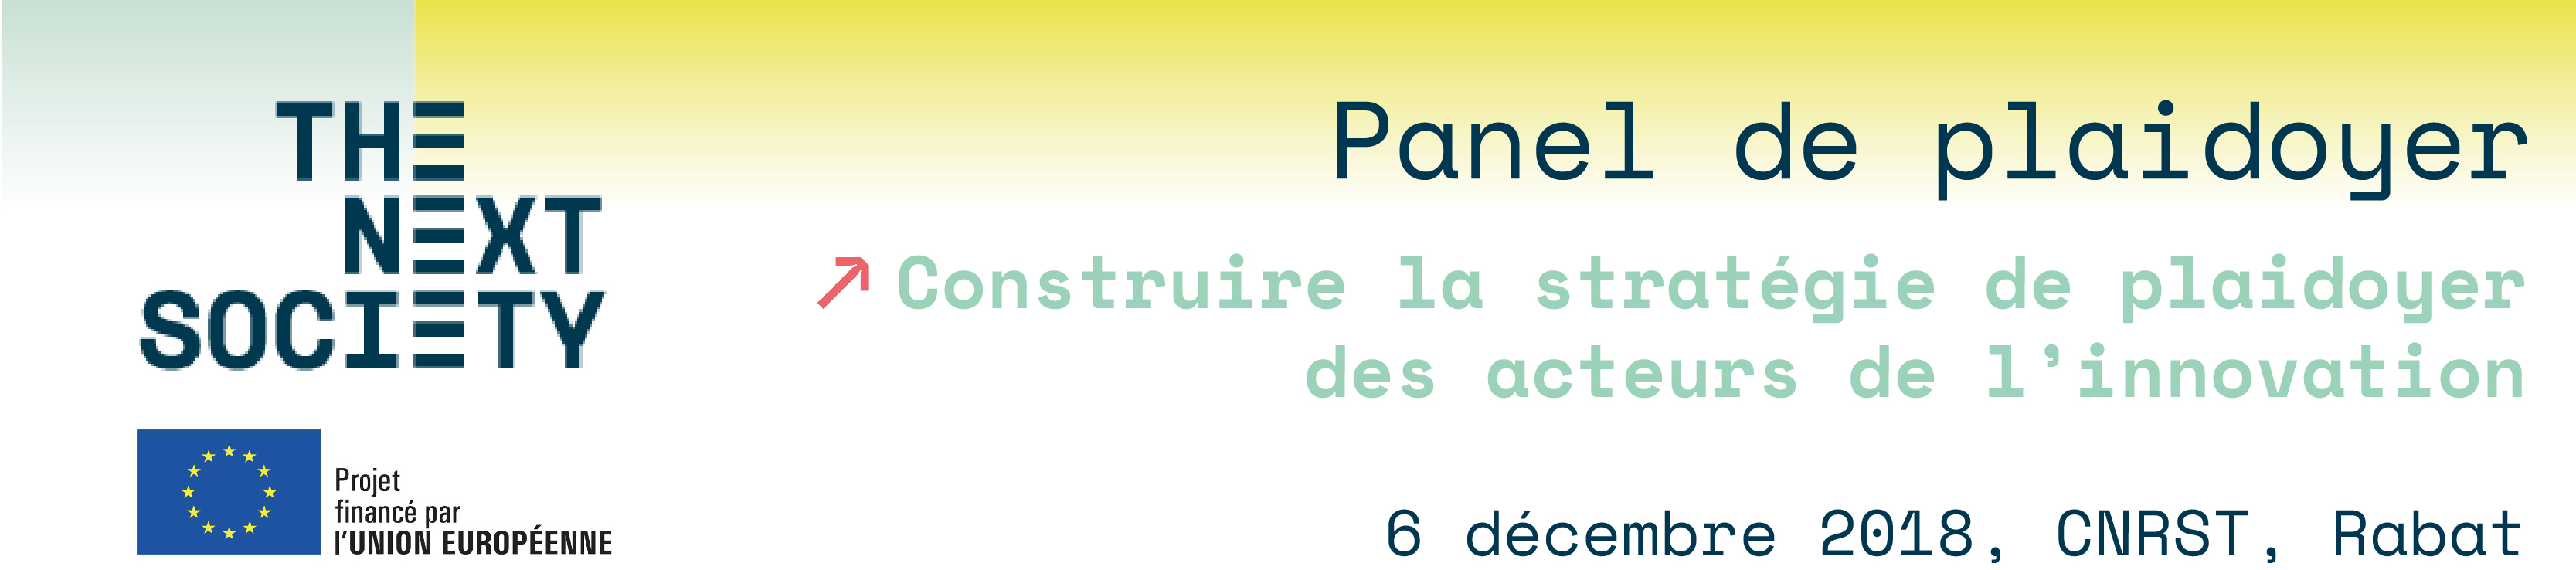 Bannière panel de plaidoyer THE NEXT SOCIETY